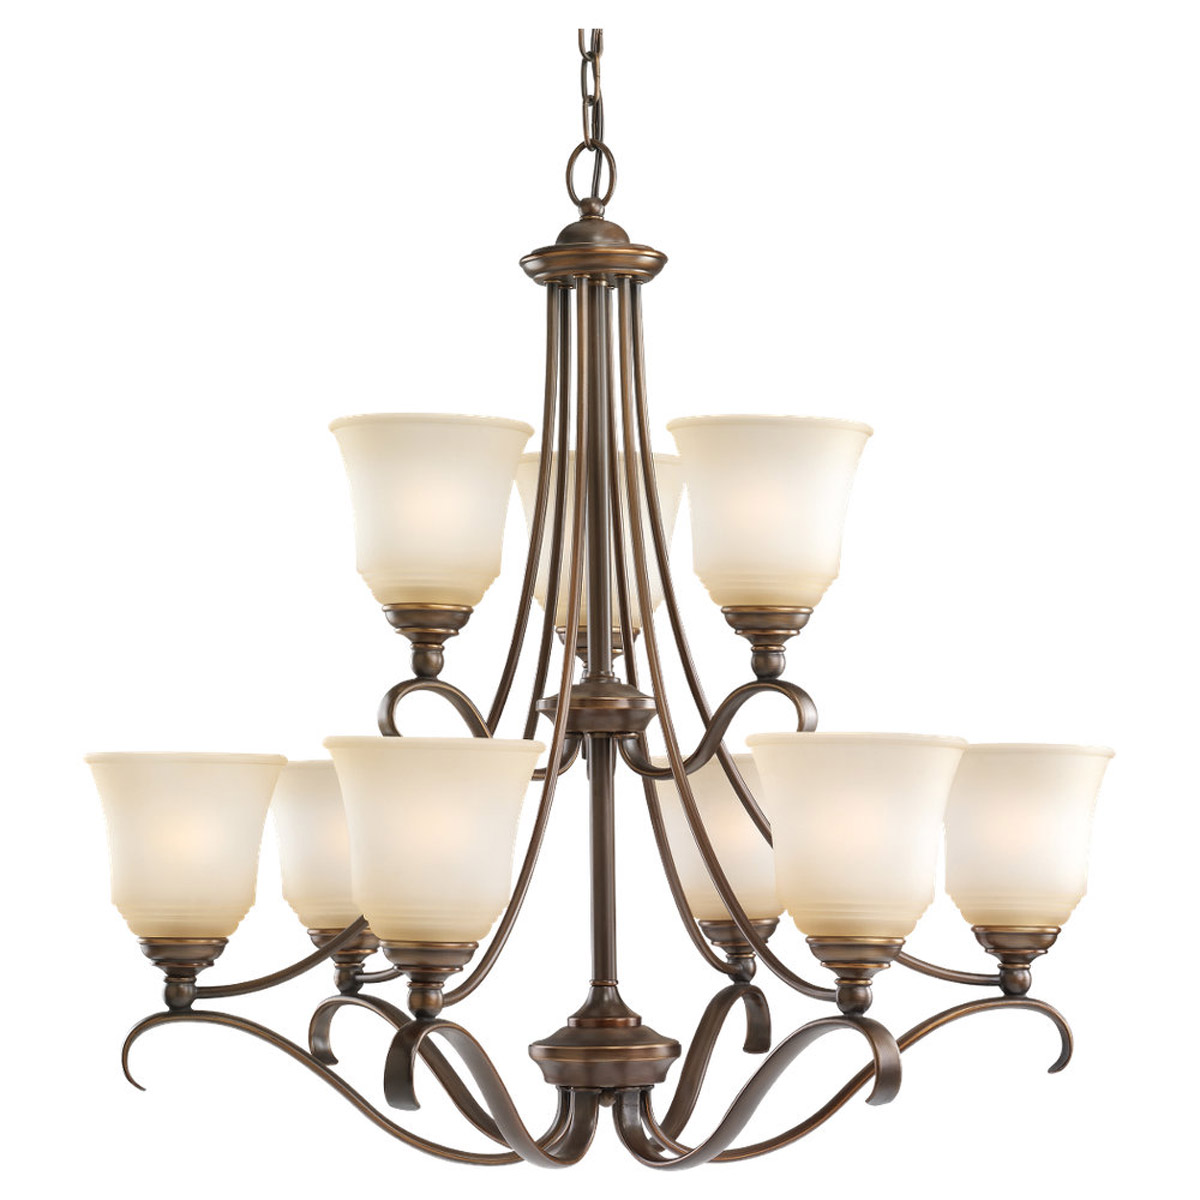 Sea Gull 39381BLE-829 Parkview 9 Light 31 inch Russet Bronze Chandelier Ceiling Light in Ginger Glass photo